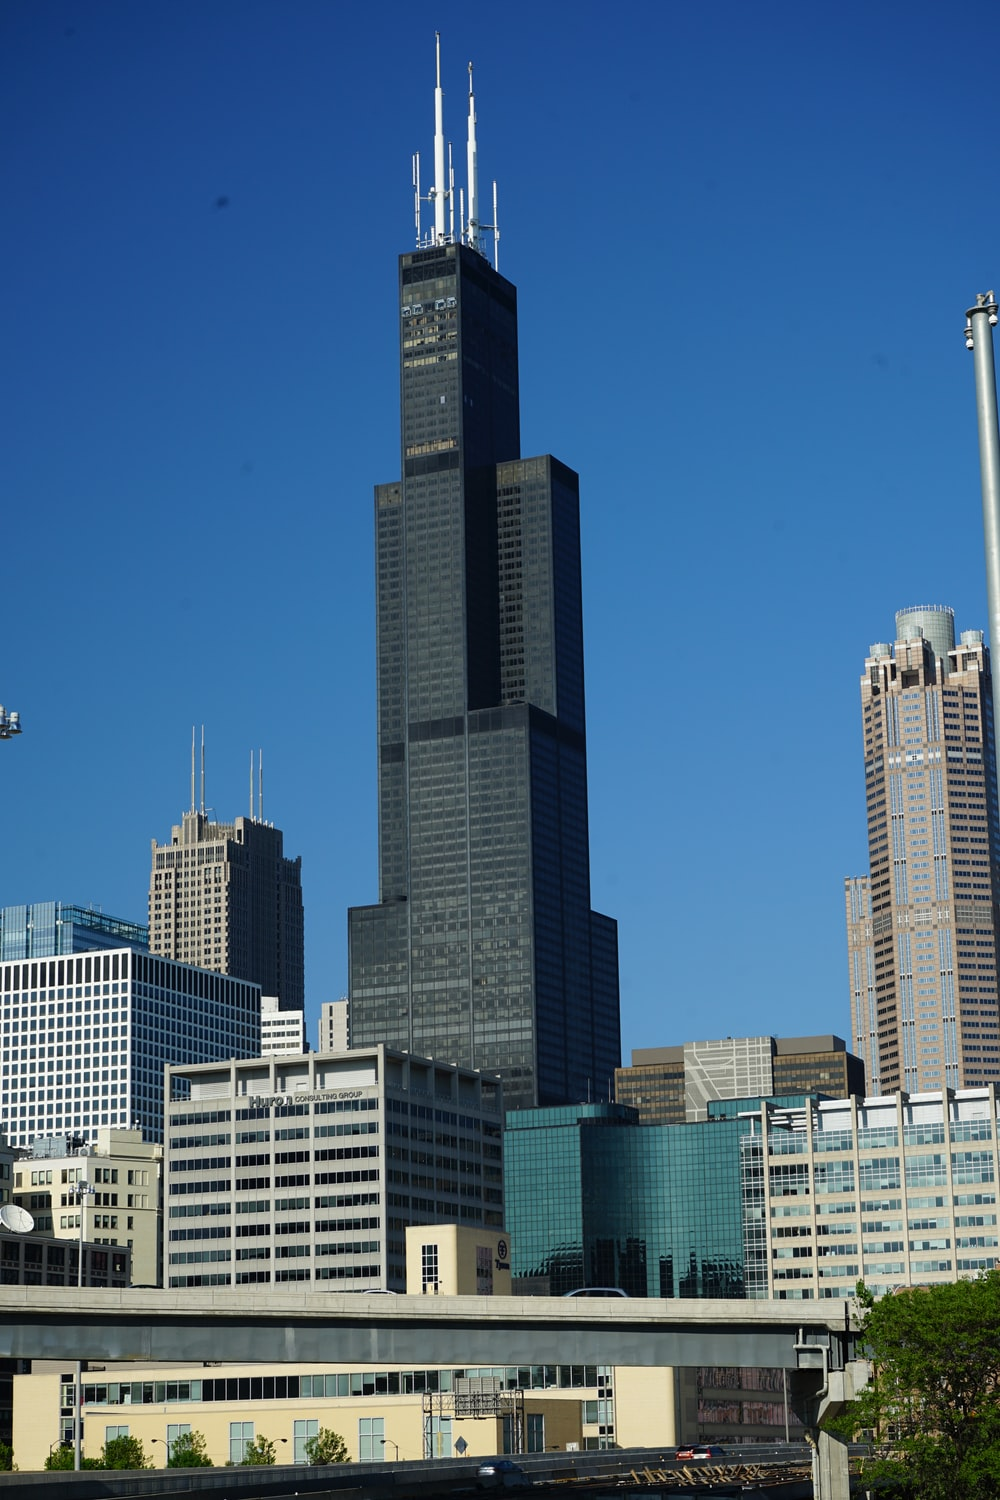 Sears Tower Pictures | Download Free Images on Unsplash